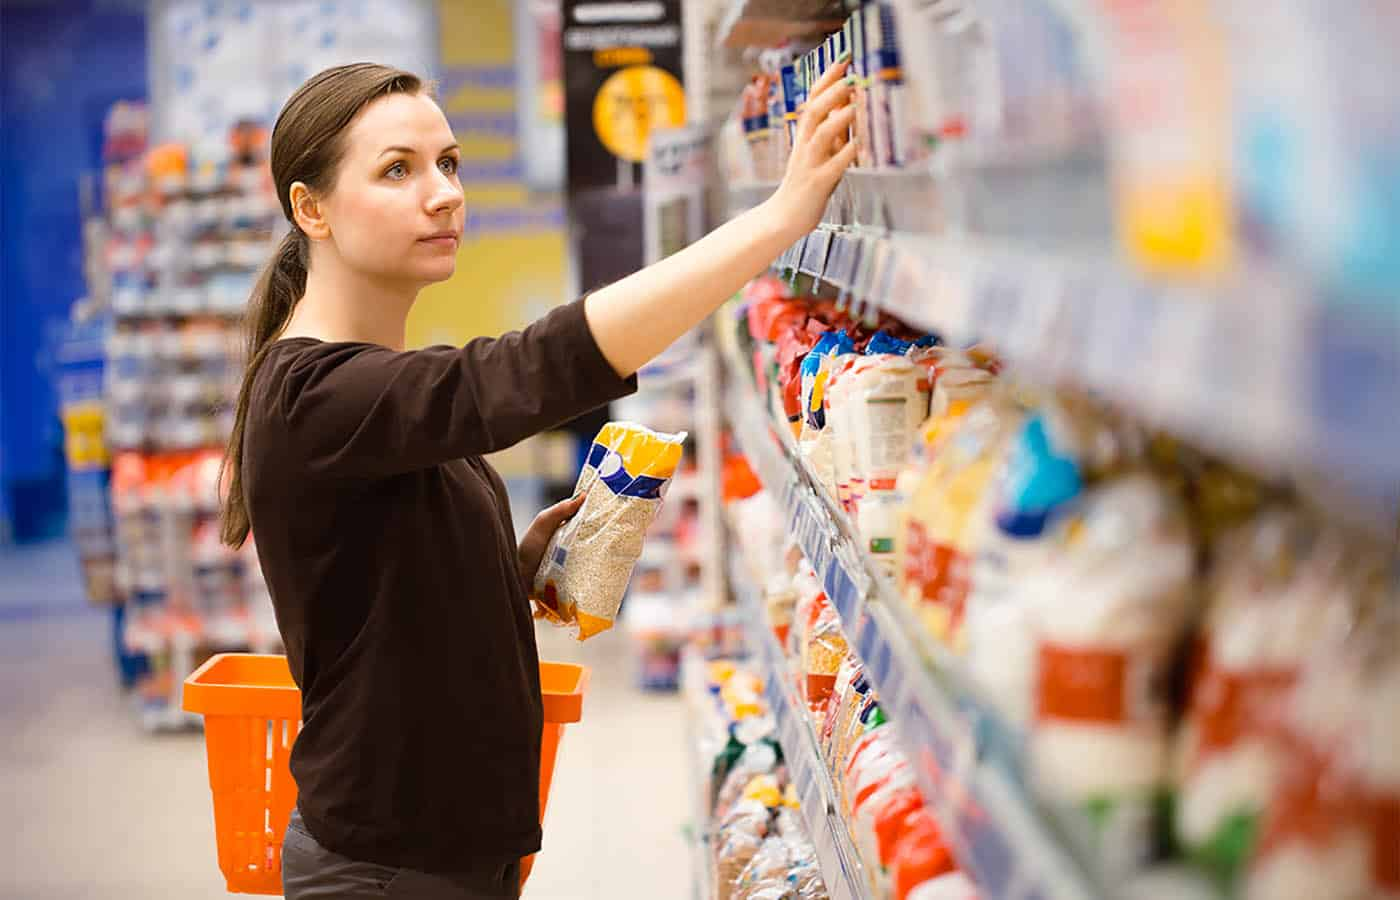 Woman shopping from the top shelf of the supermarket